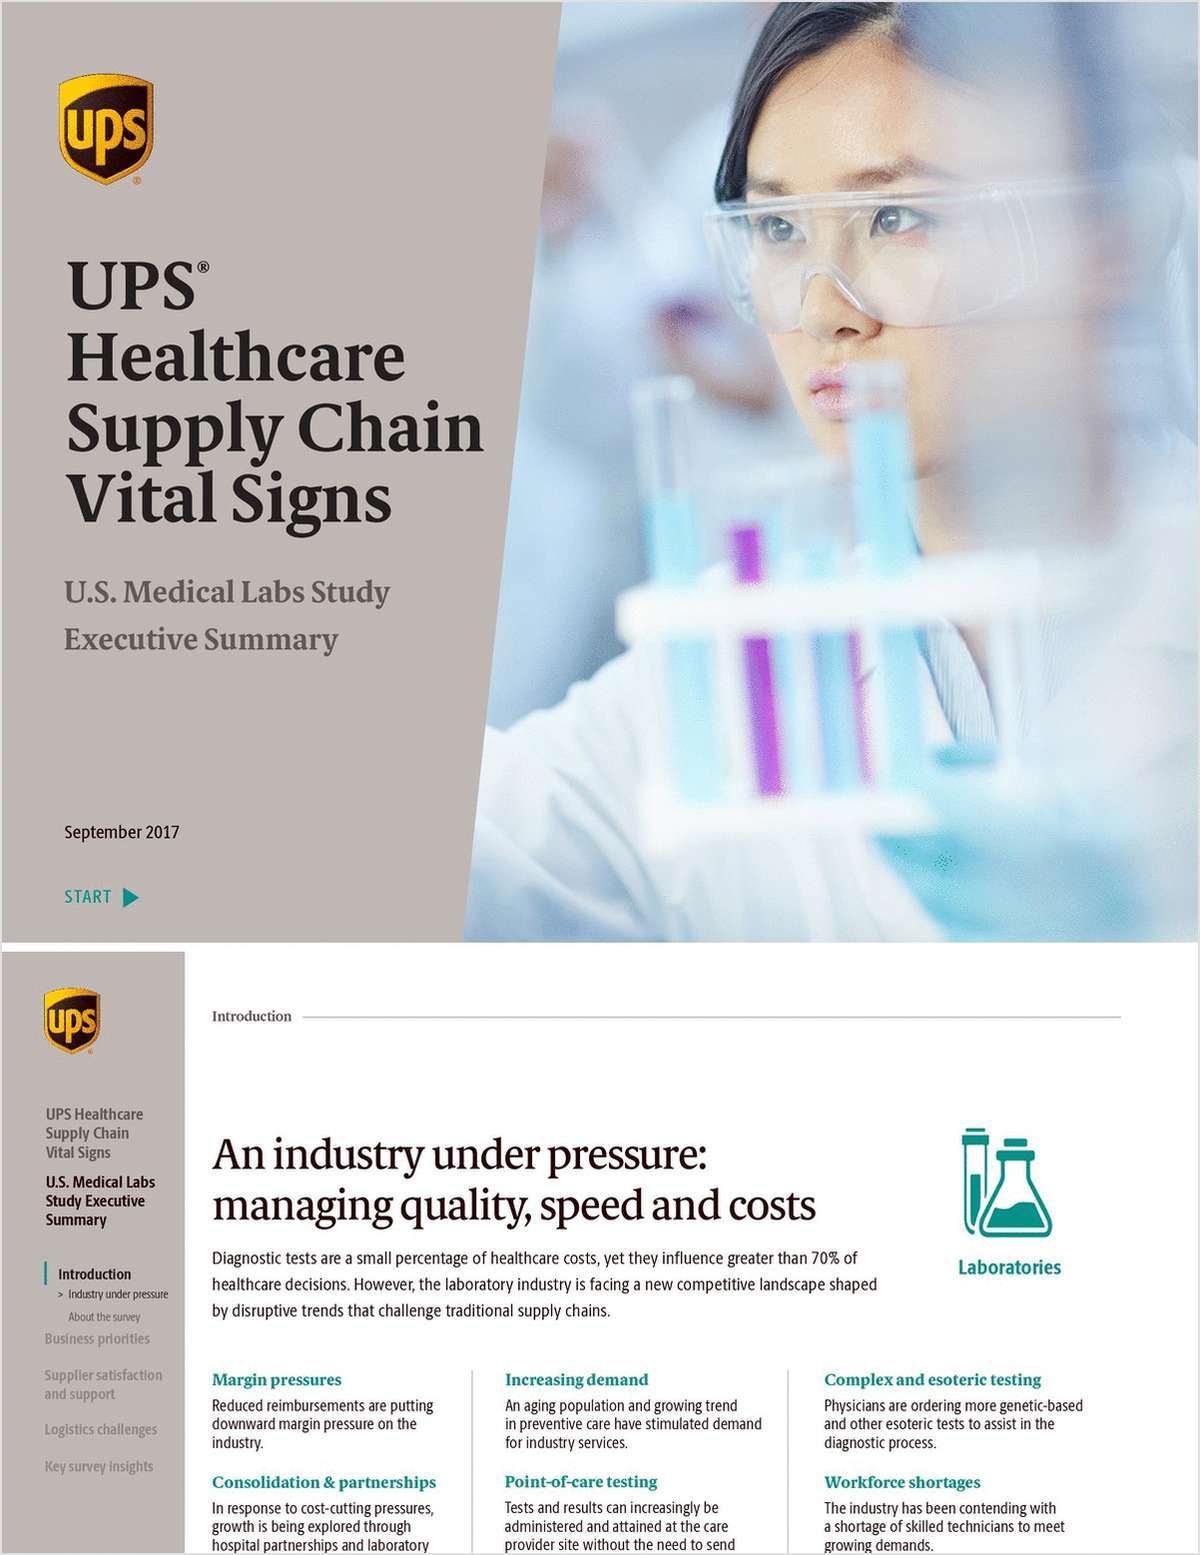 UPS Healthcare Supply Chain Vital Signs